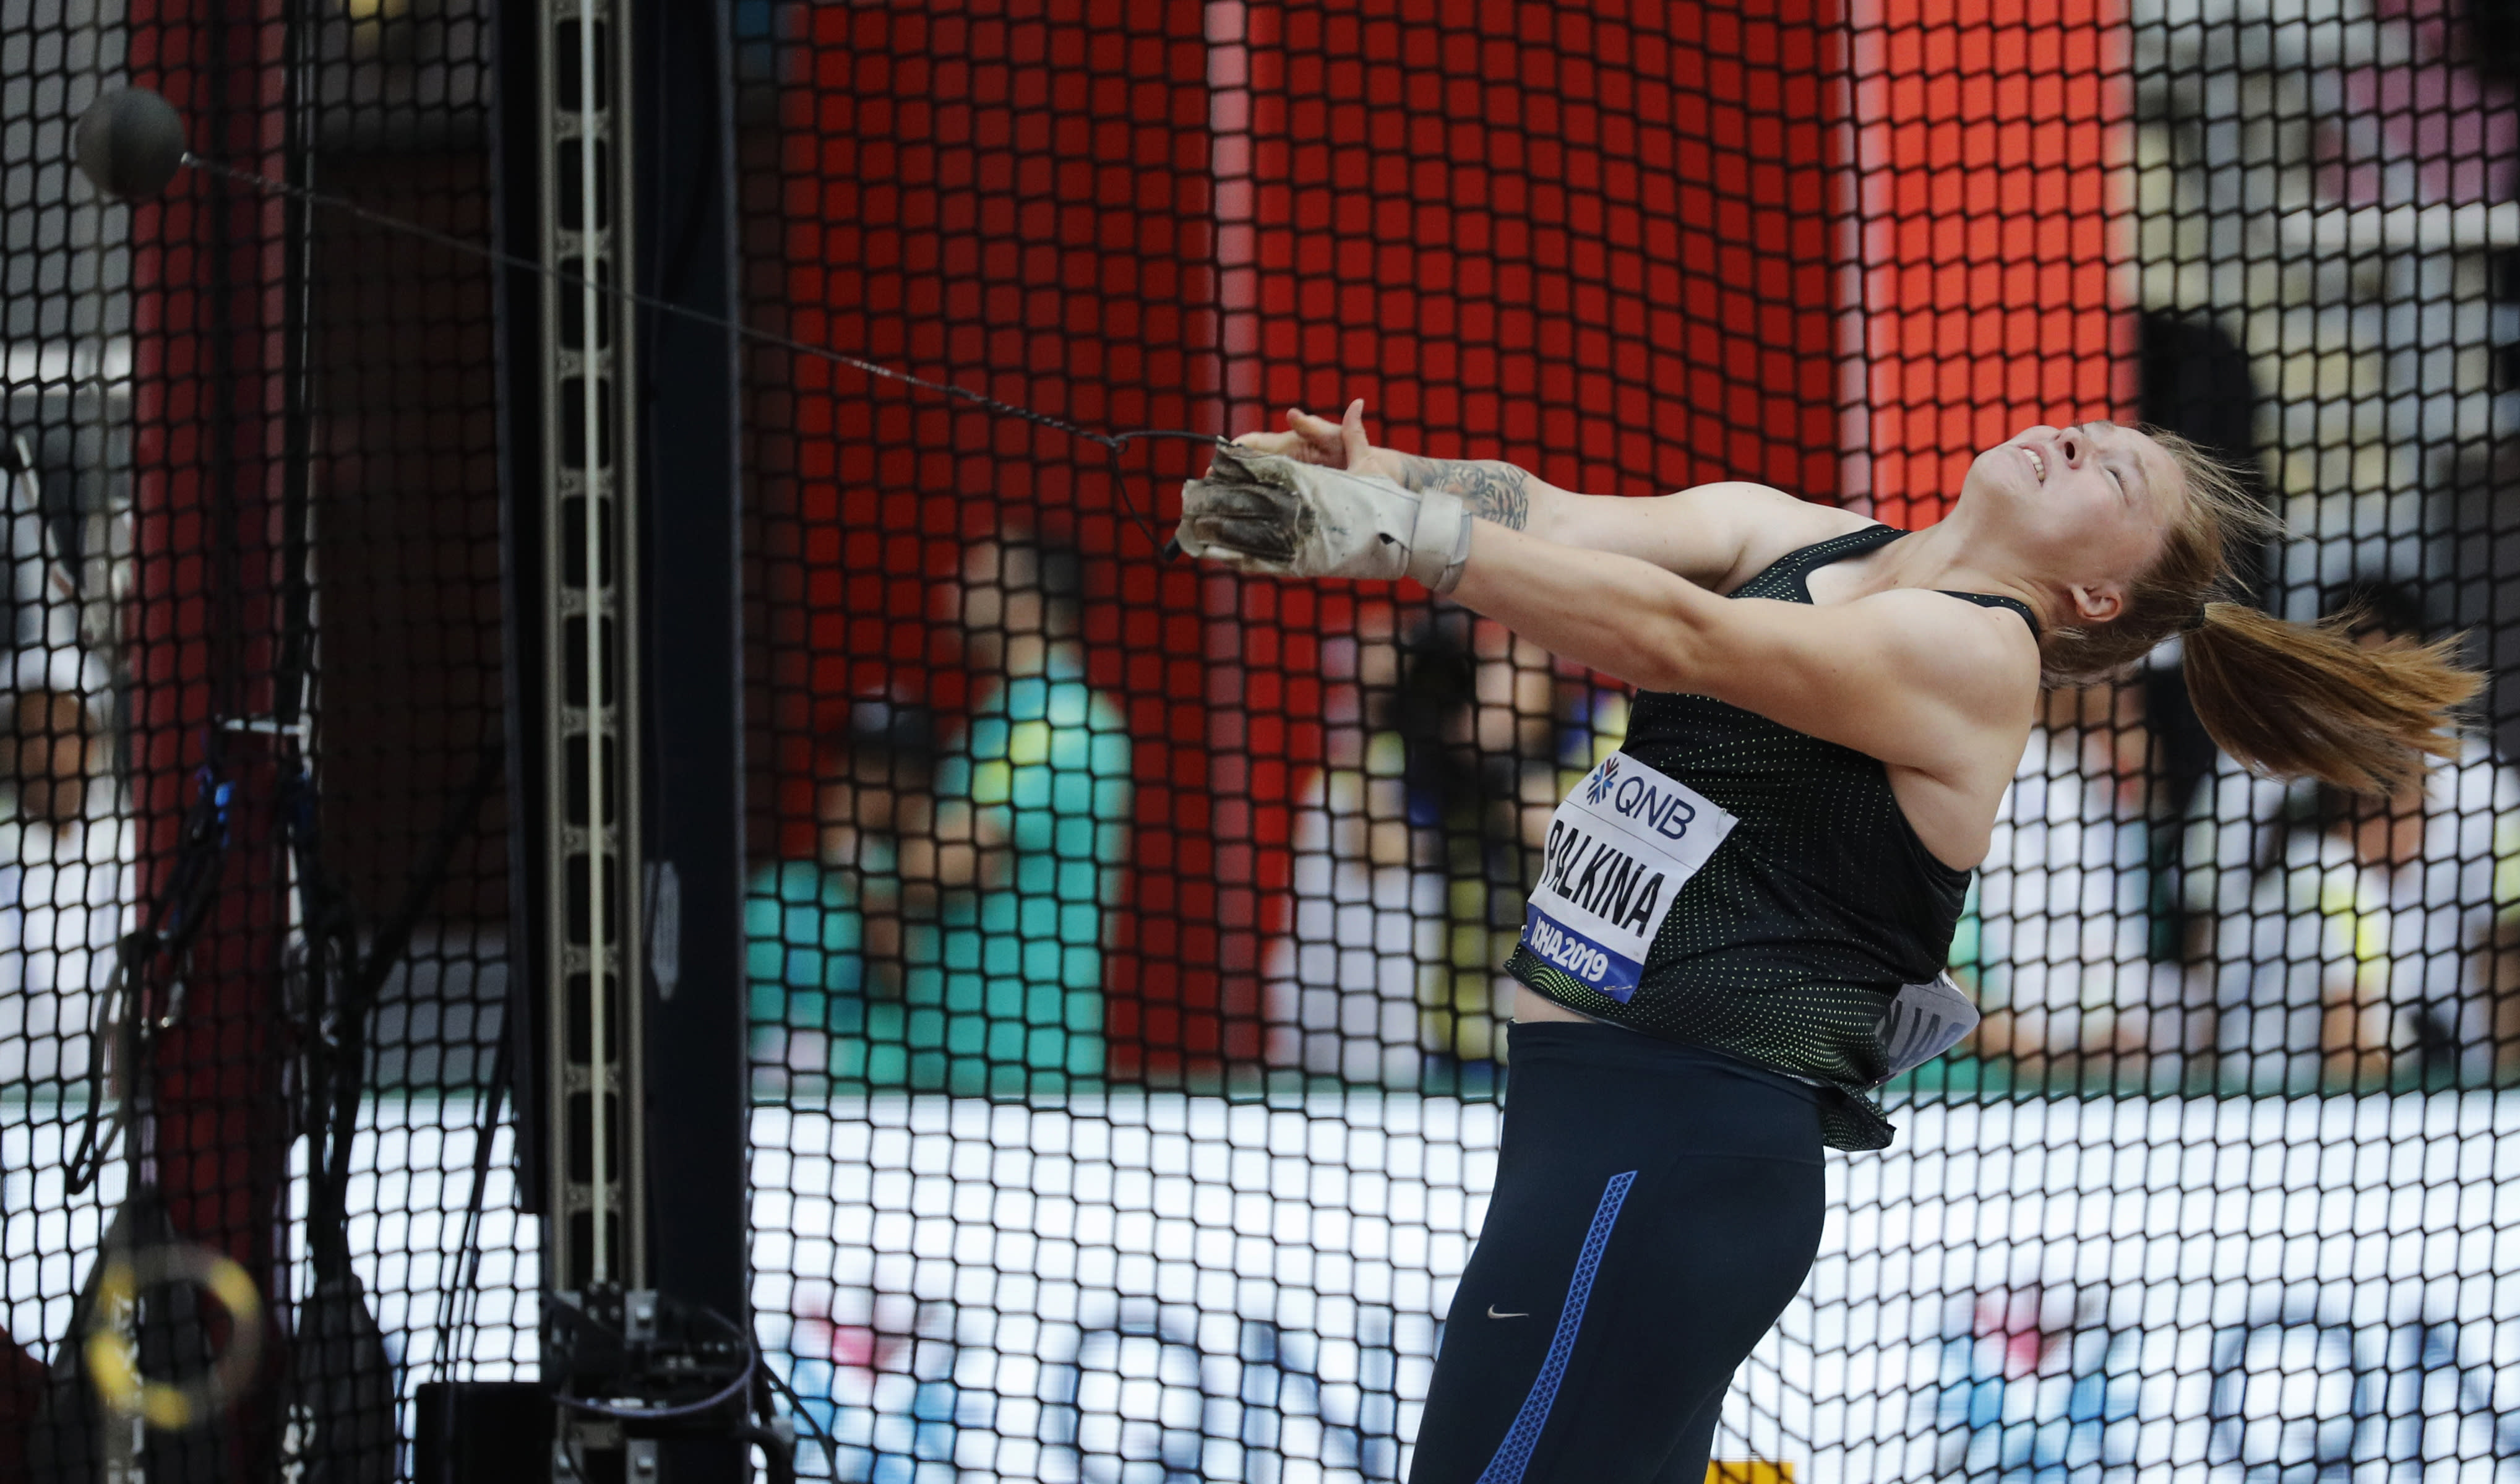 Sofiya Palkina, competing as a neutral athlete, competes during the women's hammer throw qualifying round at the World Athletics Championships in Doha, Qatar, Friday, Sept. 27, 2019. (AP Photo/Hassan Ammar)